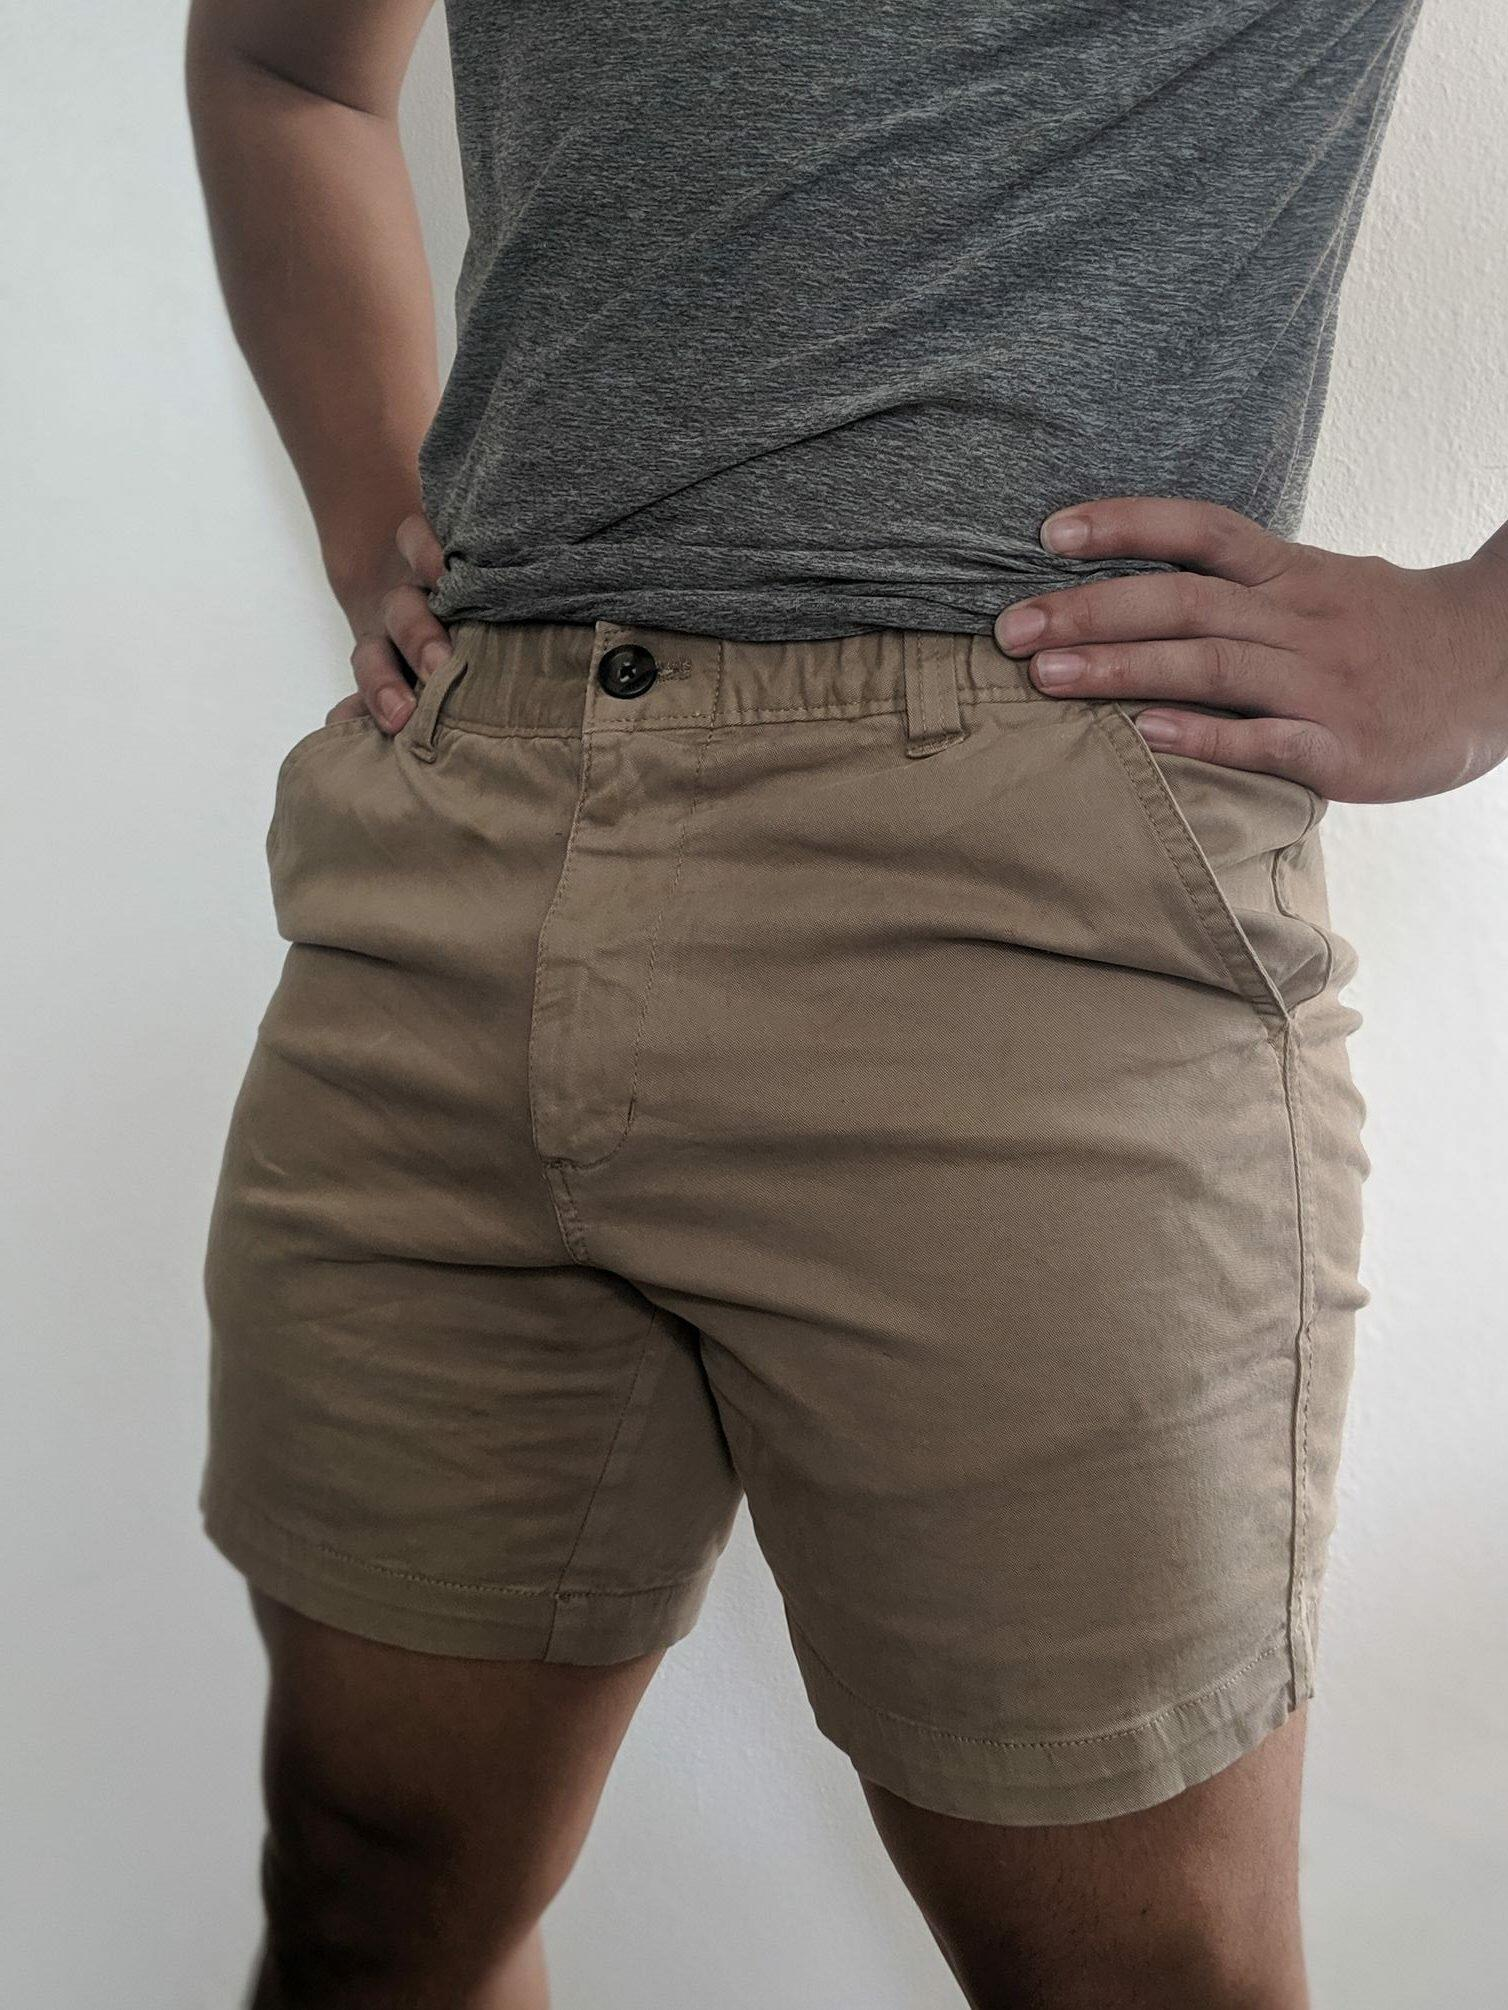 Bearbottom shorts front